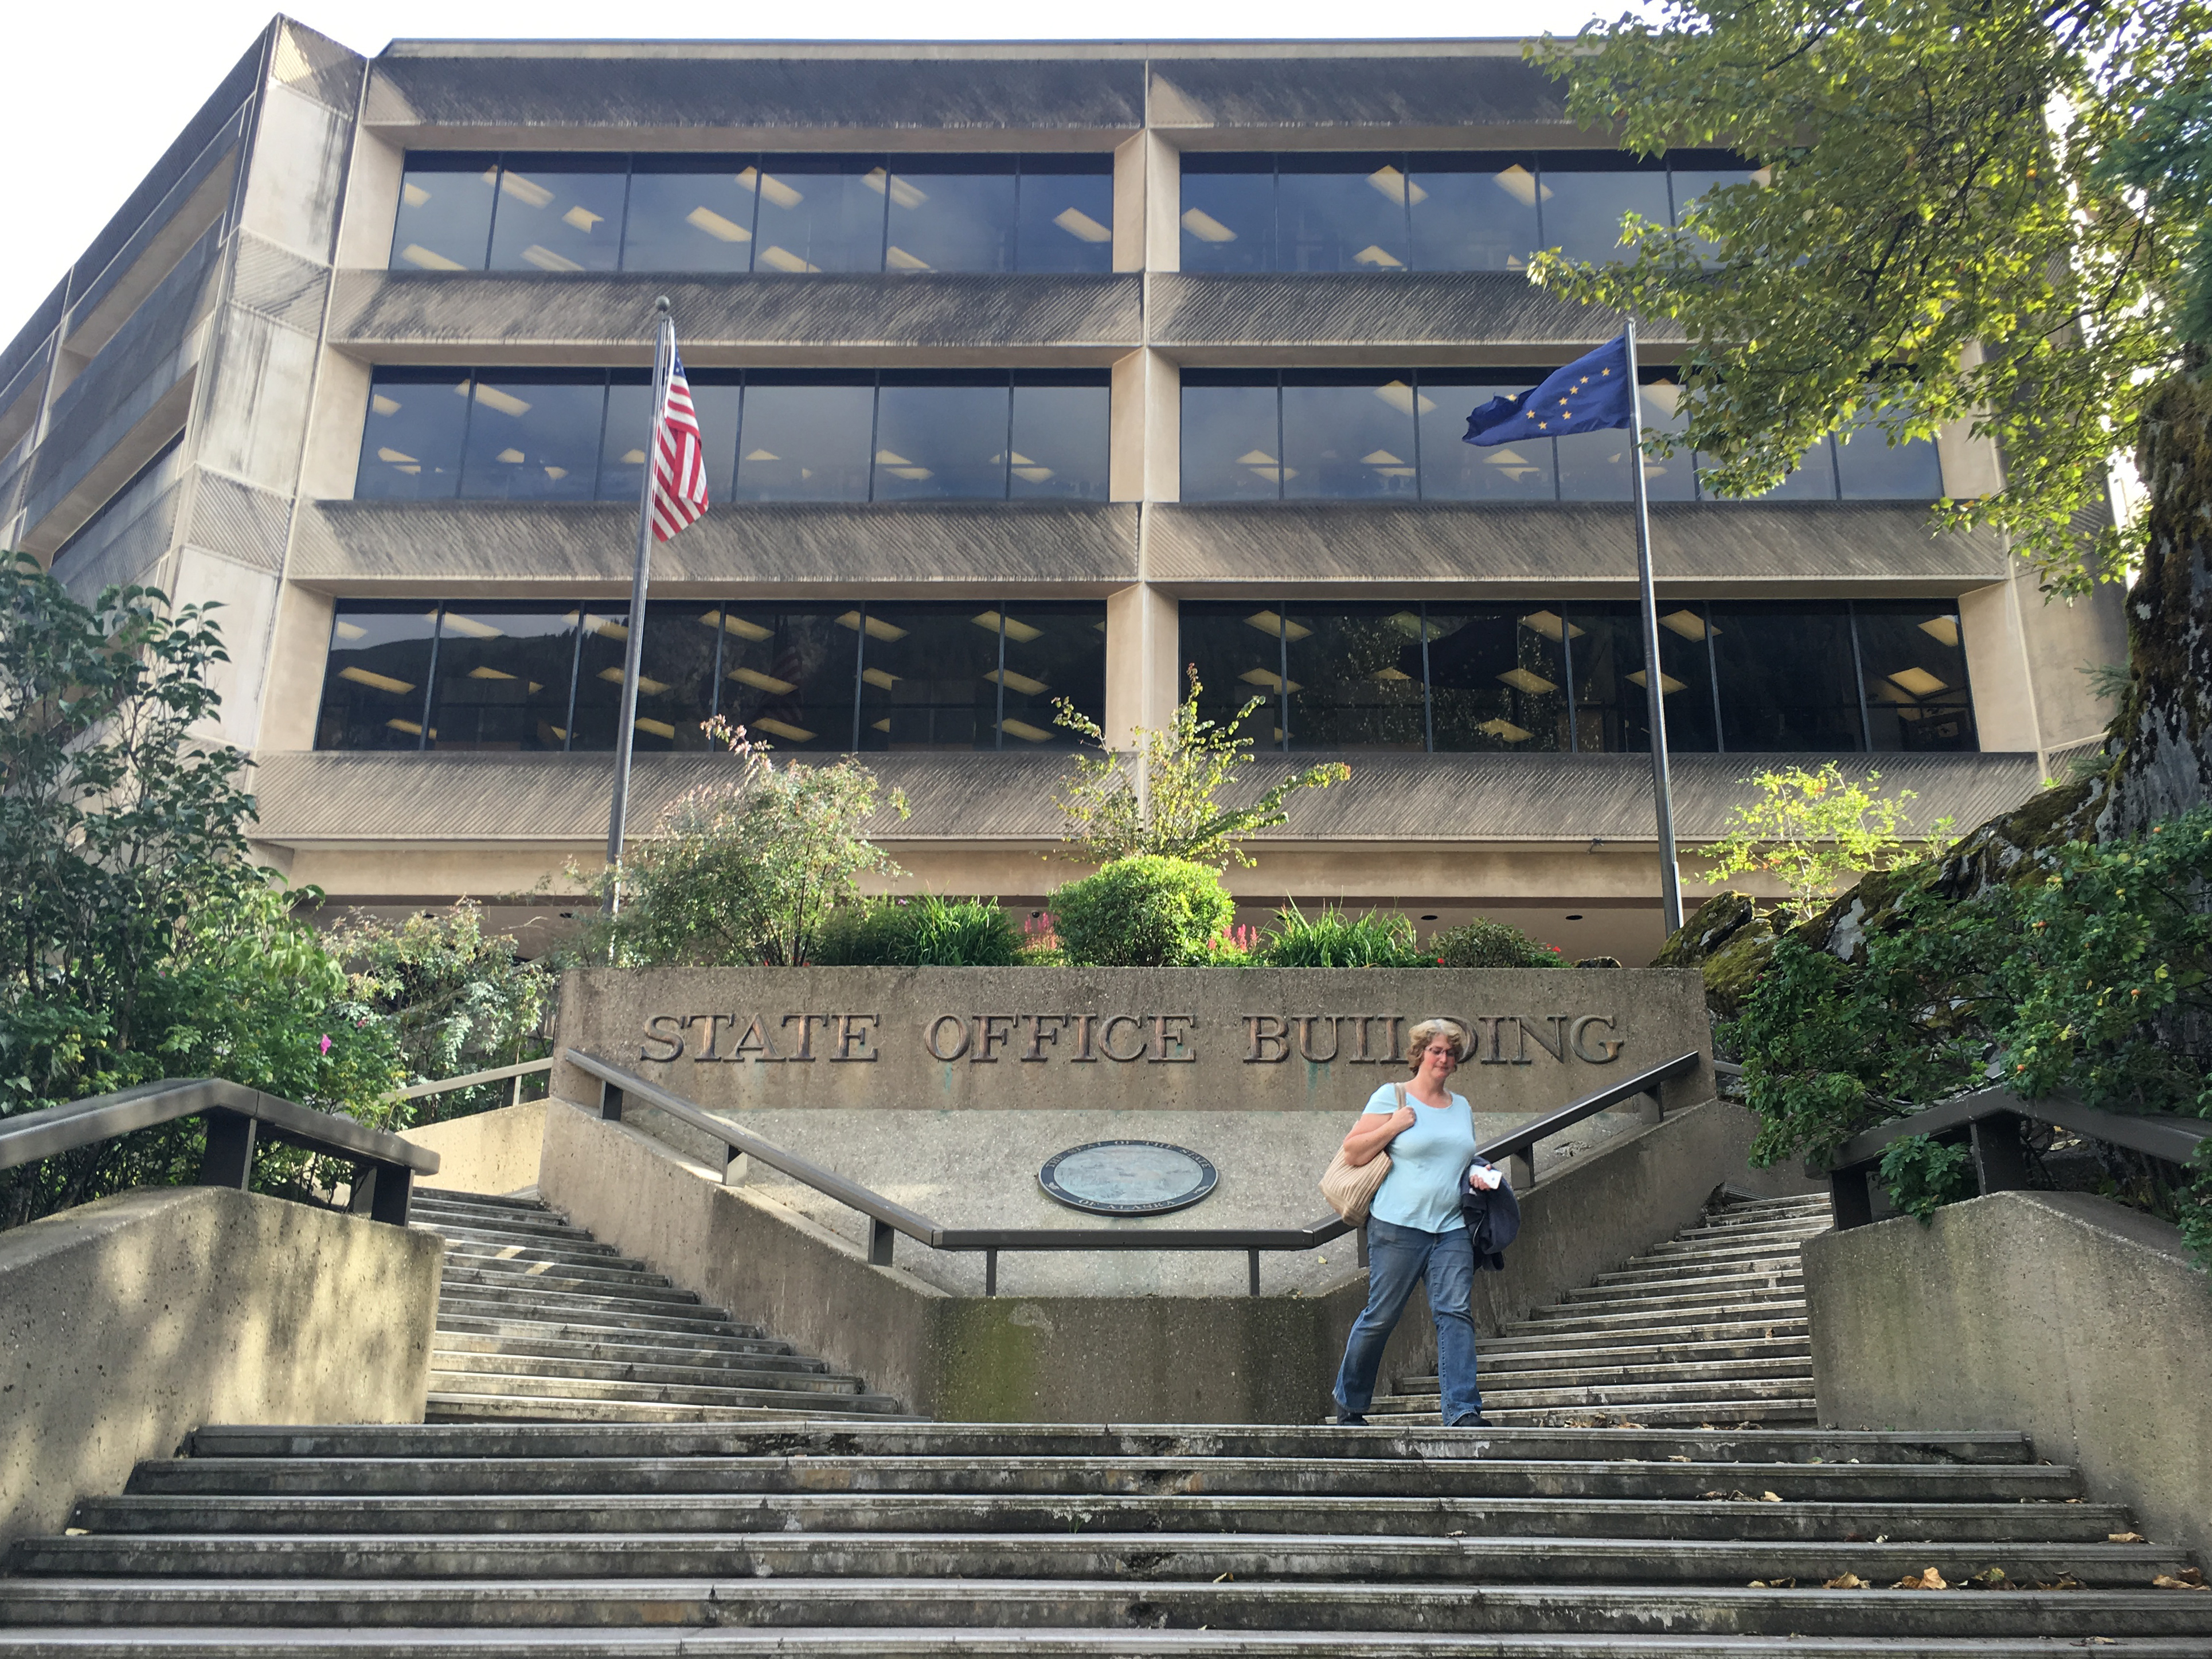 State and local government workers receive similar compensation to priv-ate-sector workers, according to an Institute of Social and Economic Research report. State Office Building. Aug. 5, 2016.(Photo by Andrew Kitchenman/KTOO)